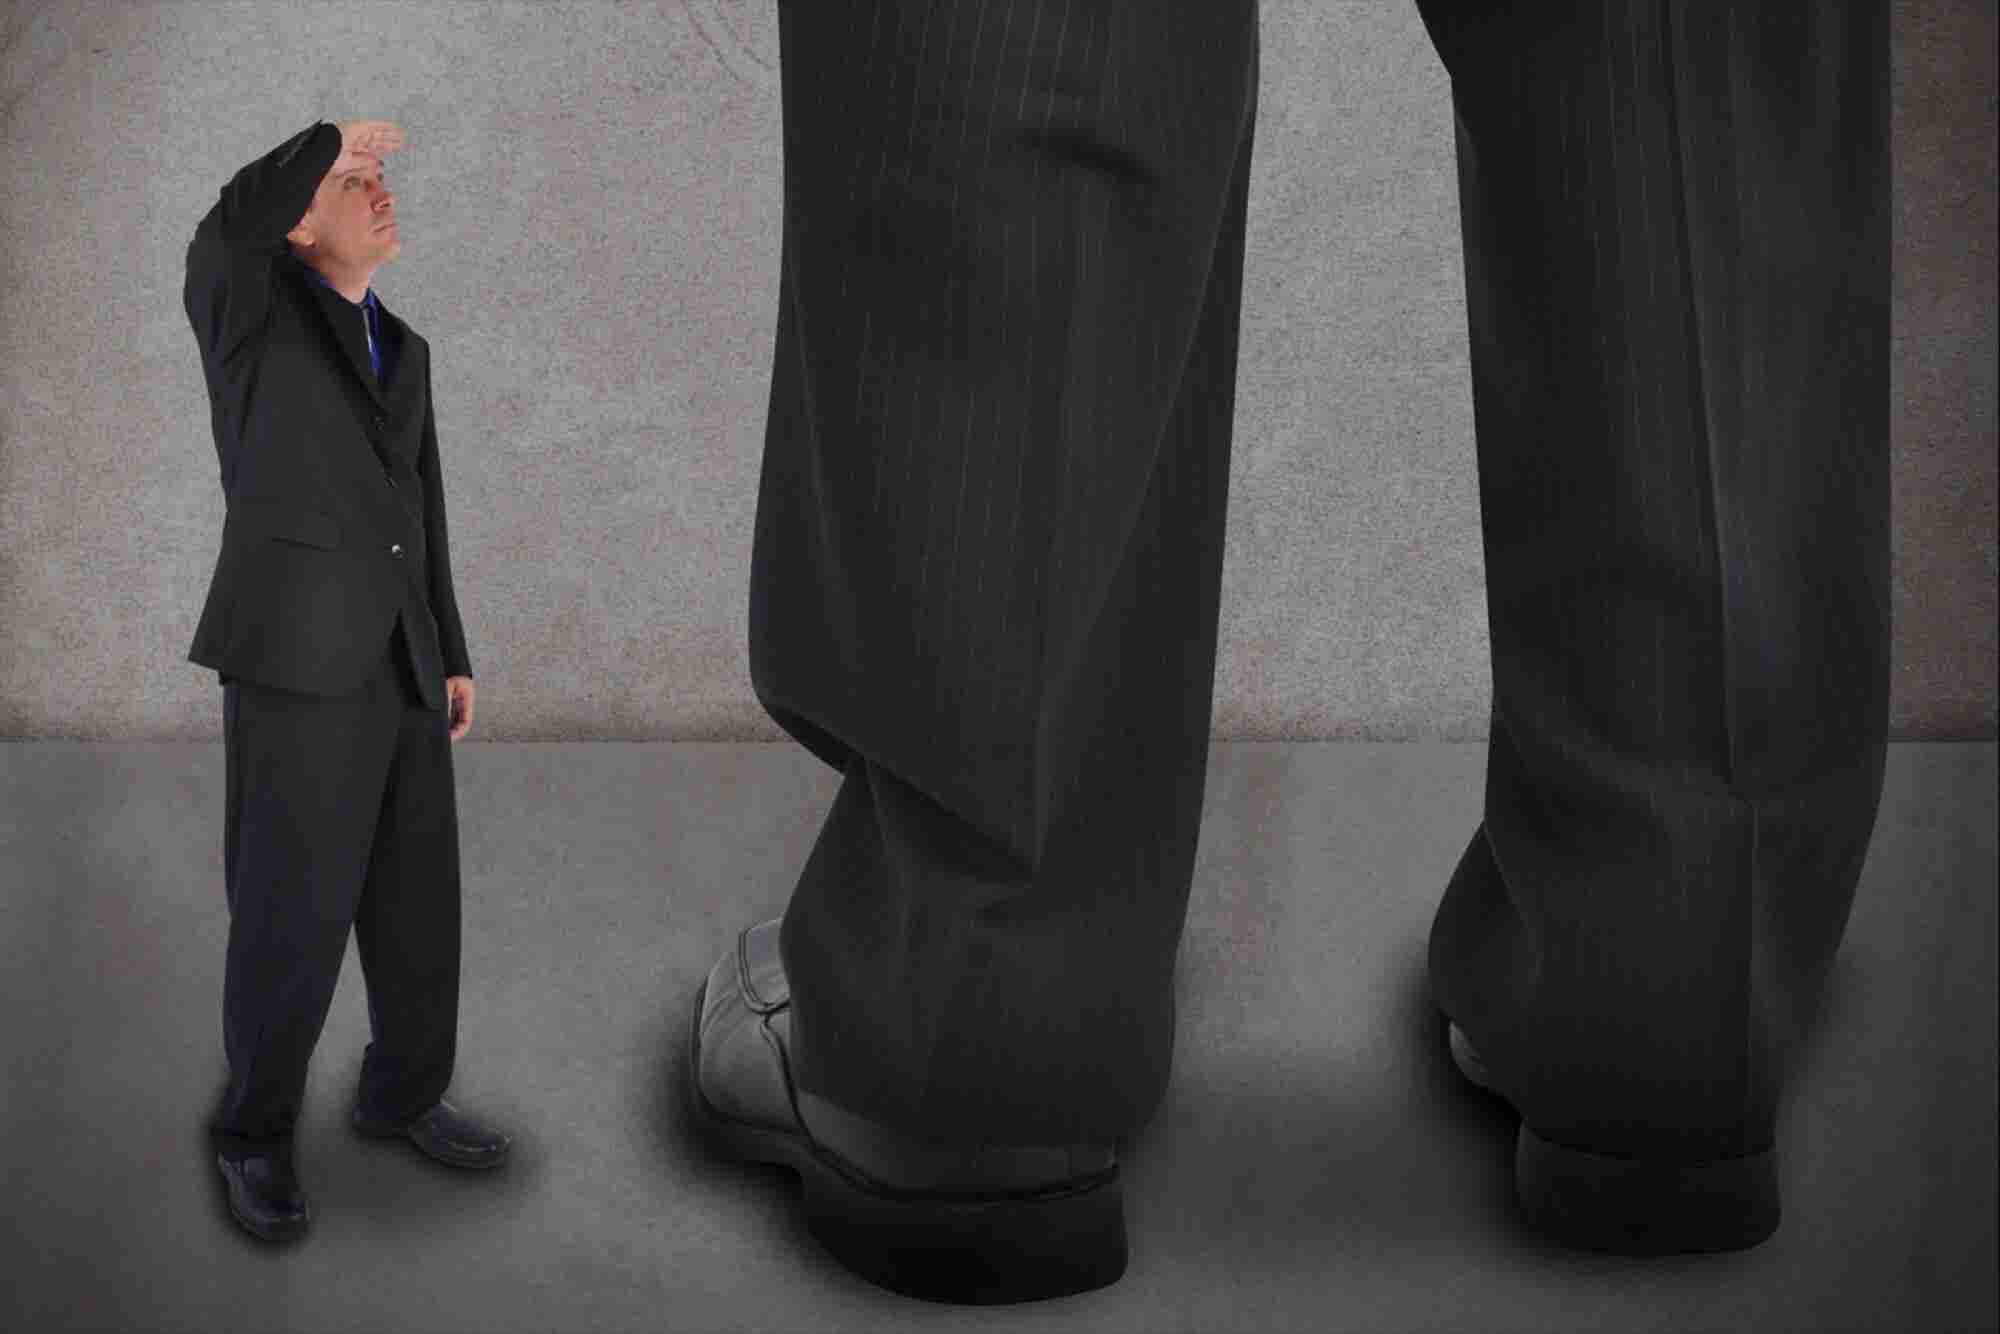 5 Issues Entrepreneurs Need to Be Aware of When Working With Big Customers